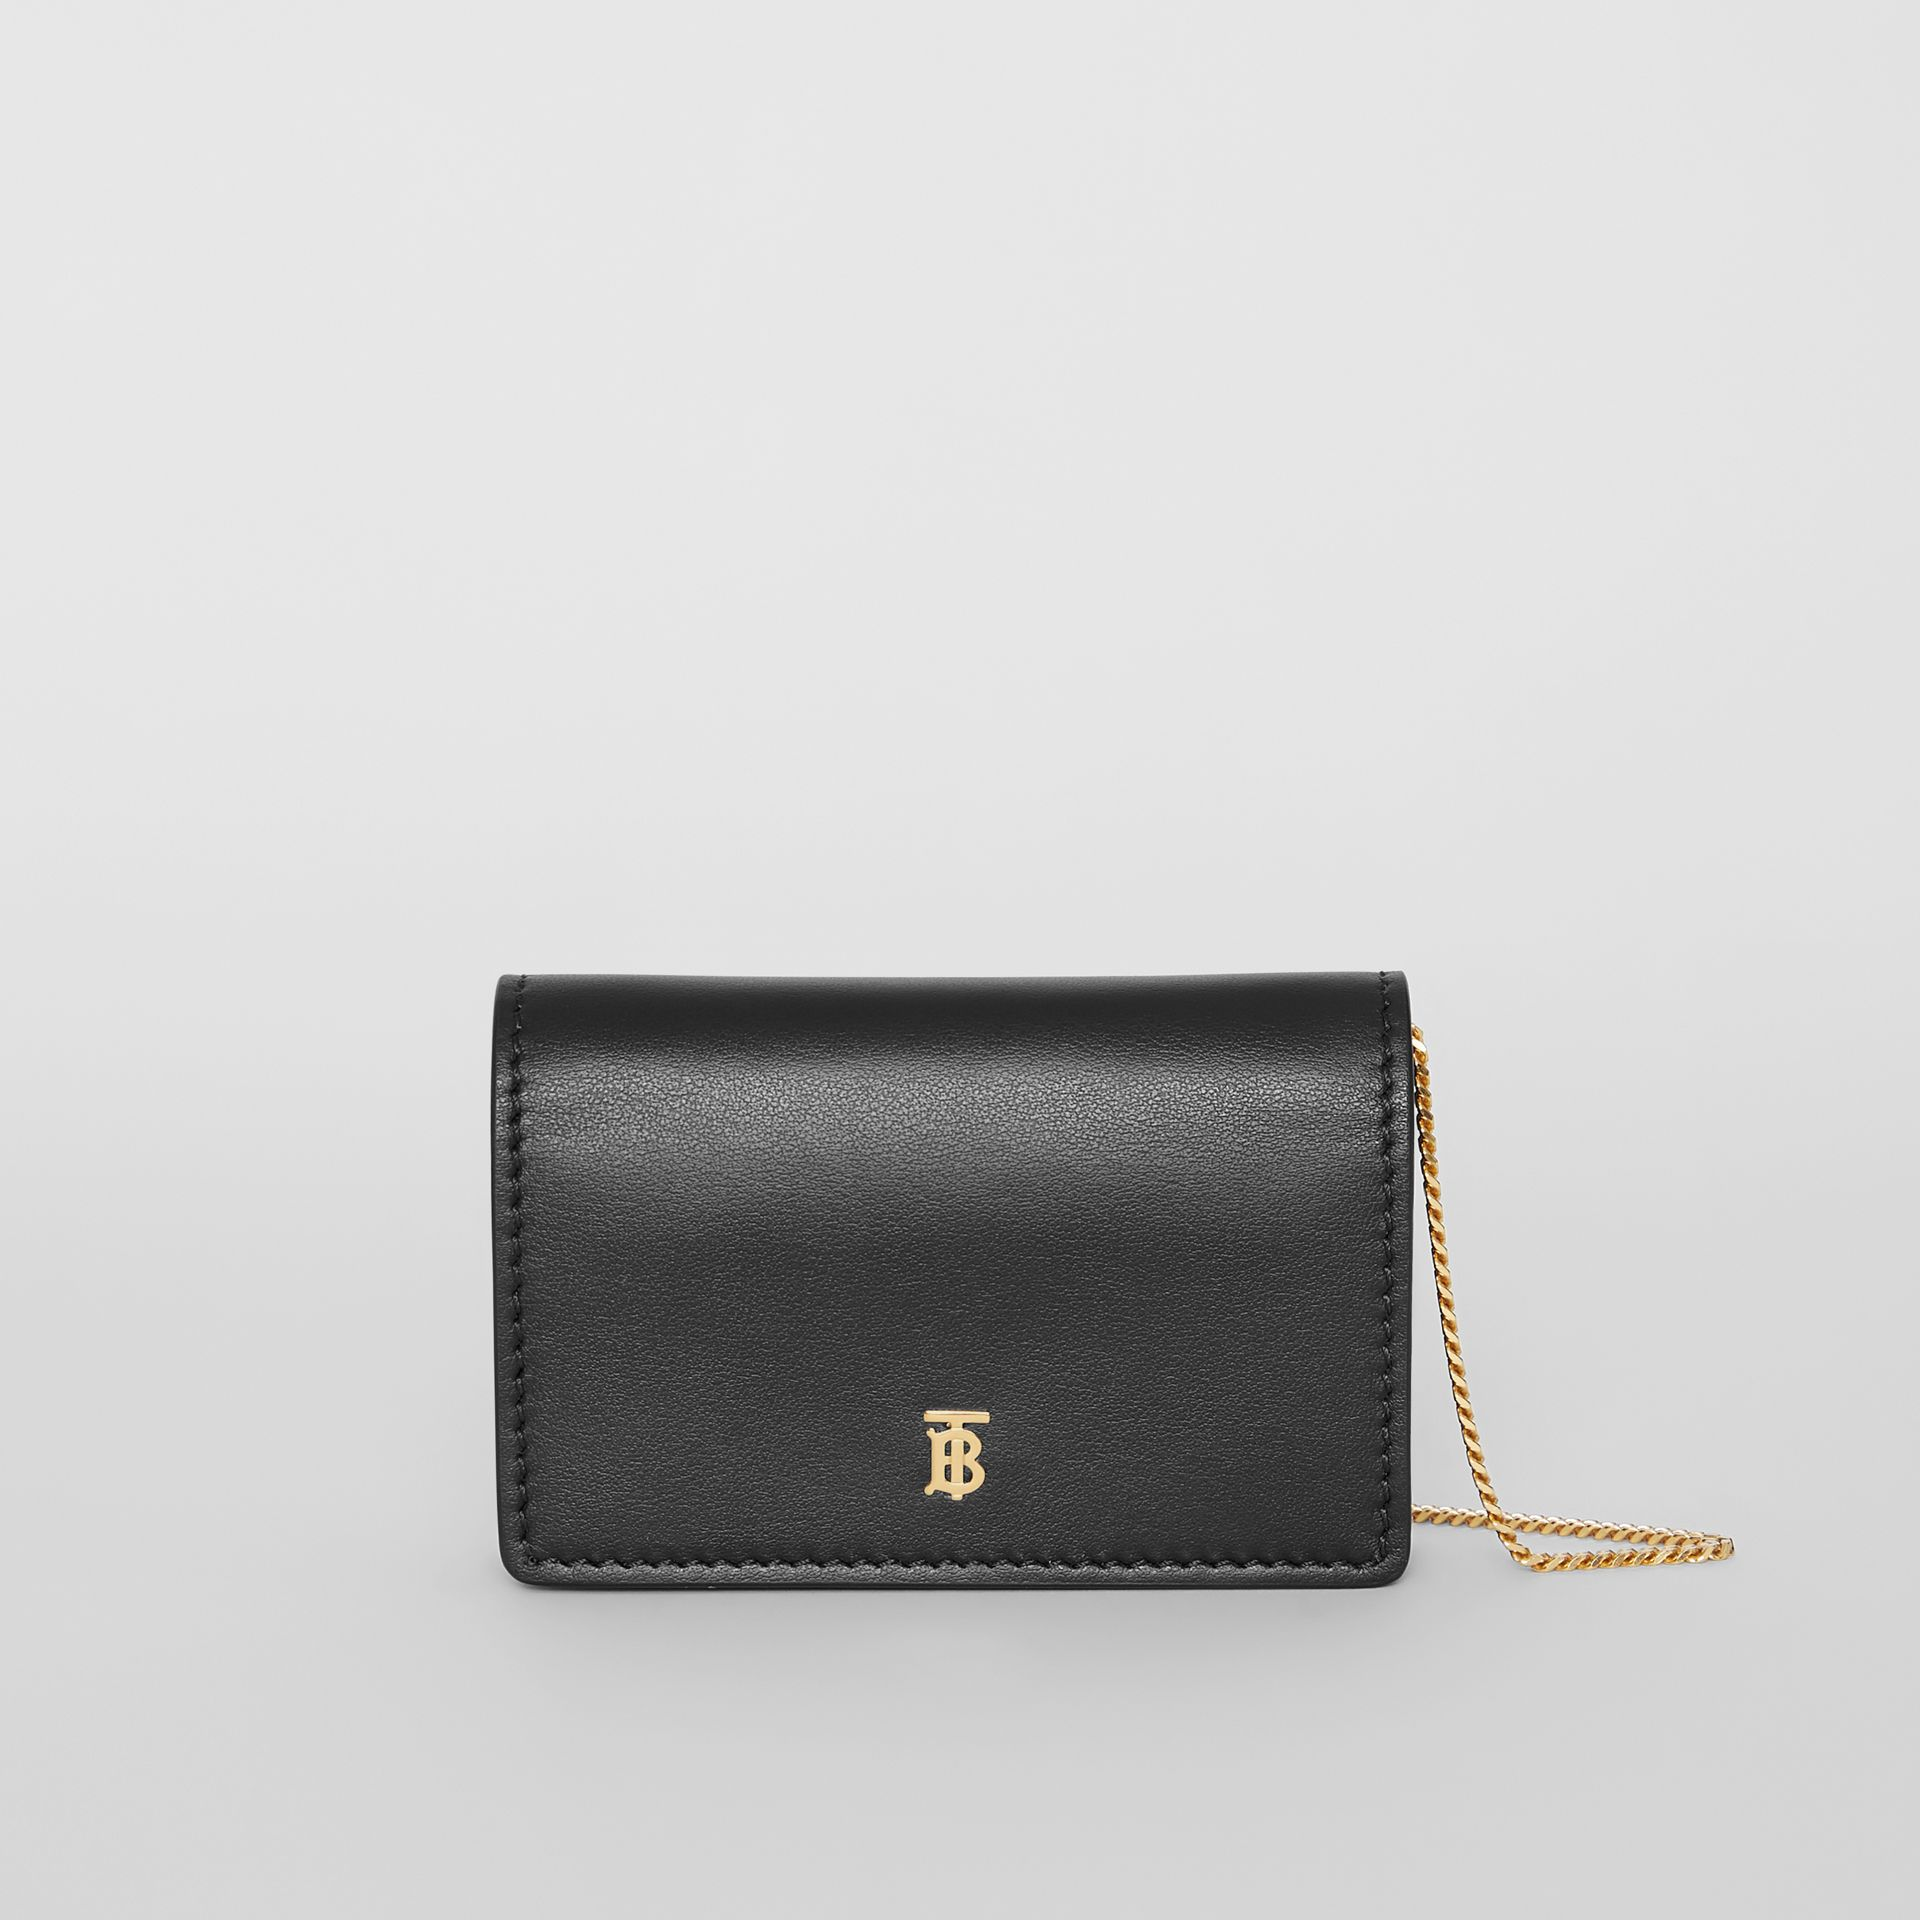 Porte-cartes en cuir avec sangle amovible (Noir) | Burberry Canada - photo de la galerie 0